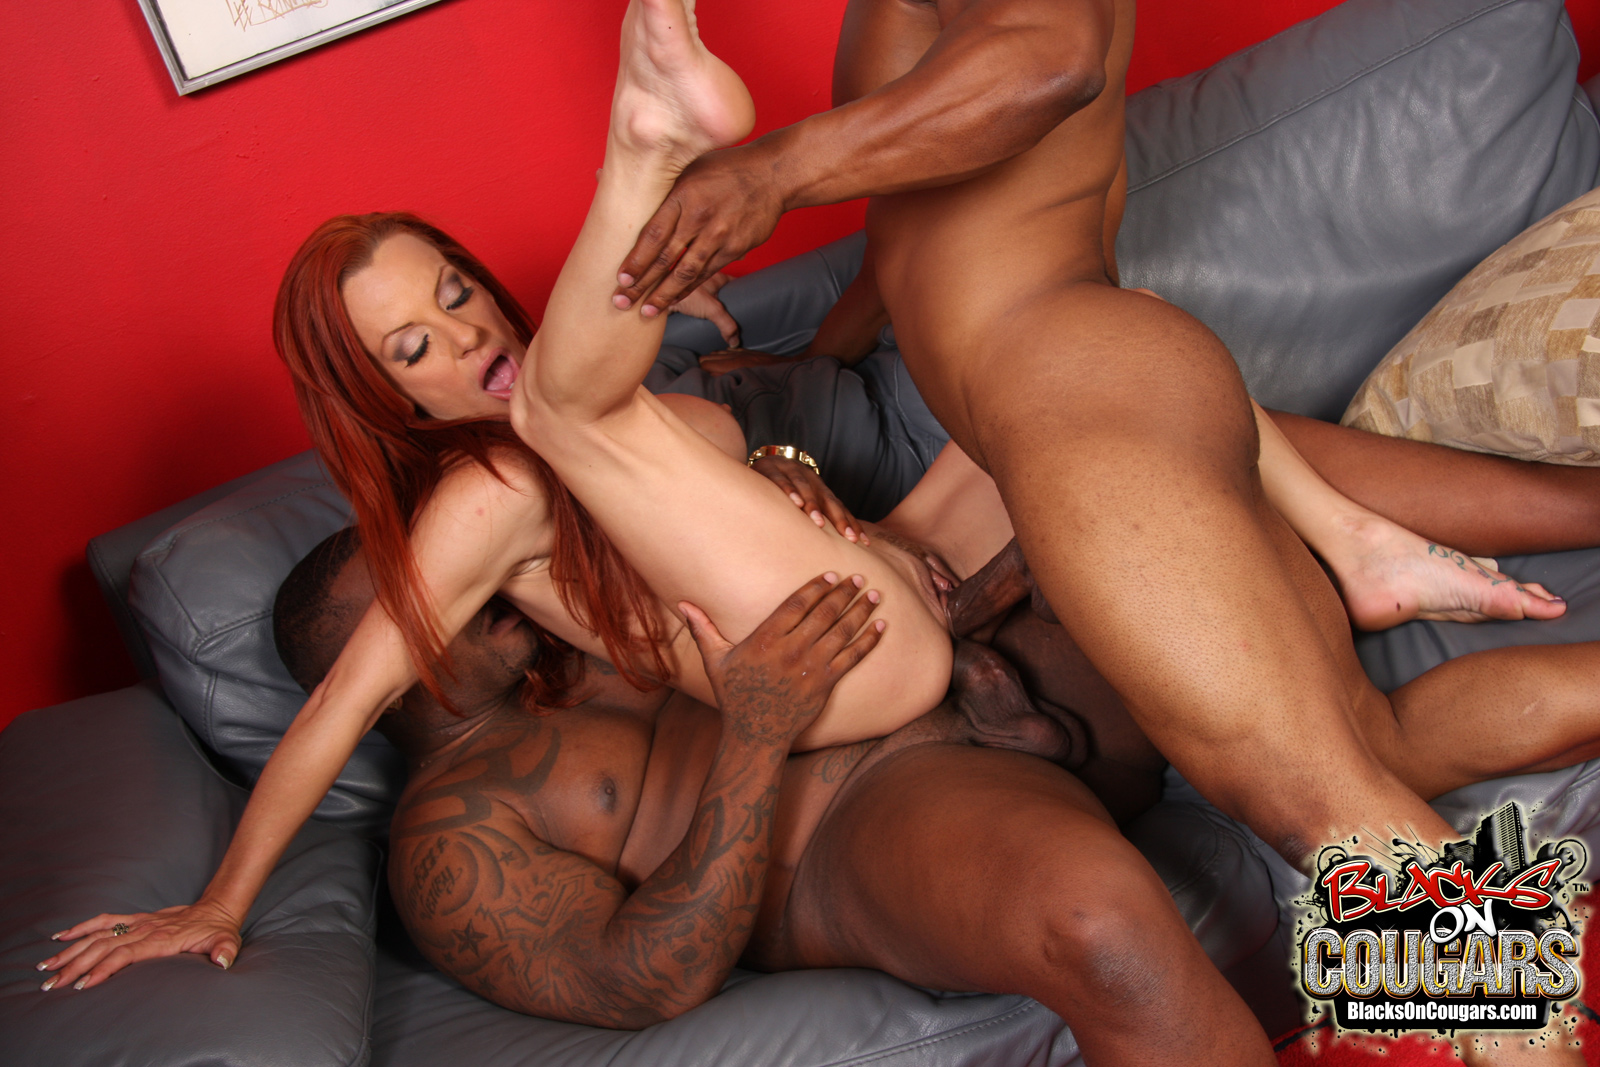 free porn samples of blacks on cougars - milf cougars fucking bbcs